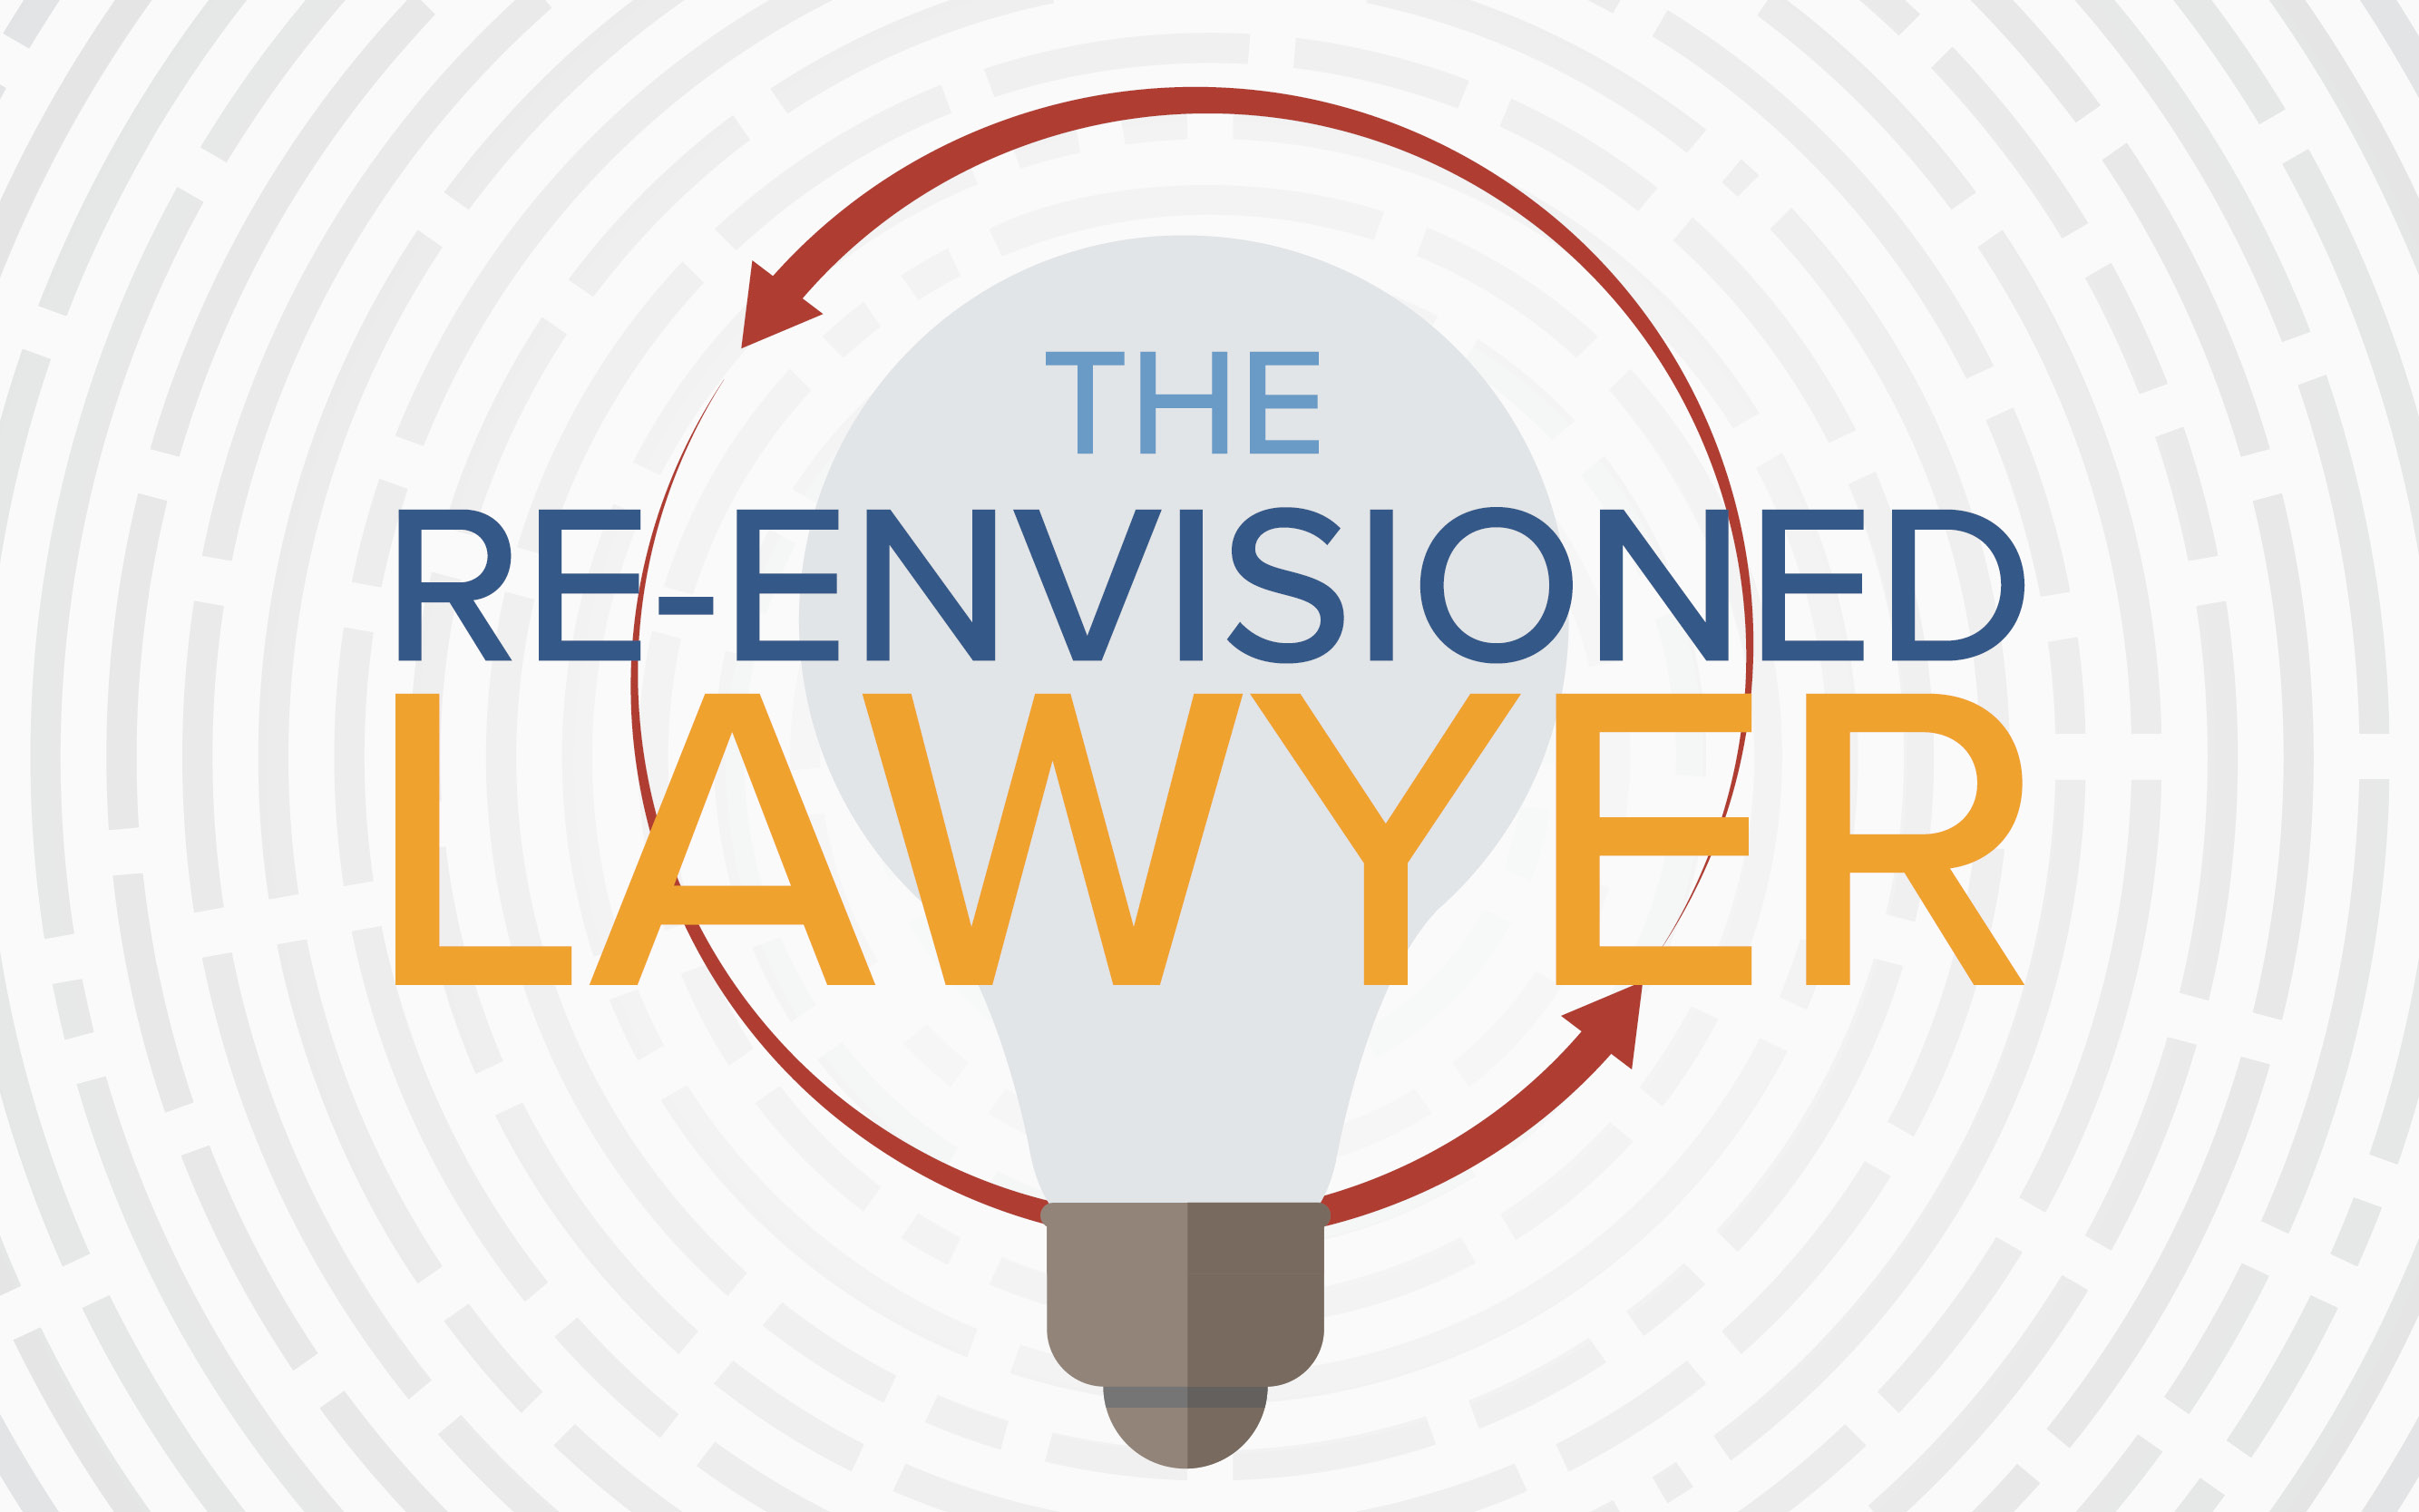 The Re-Envisioned Lawyer